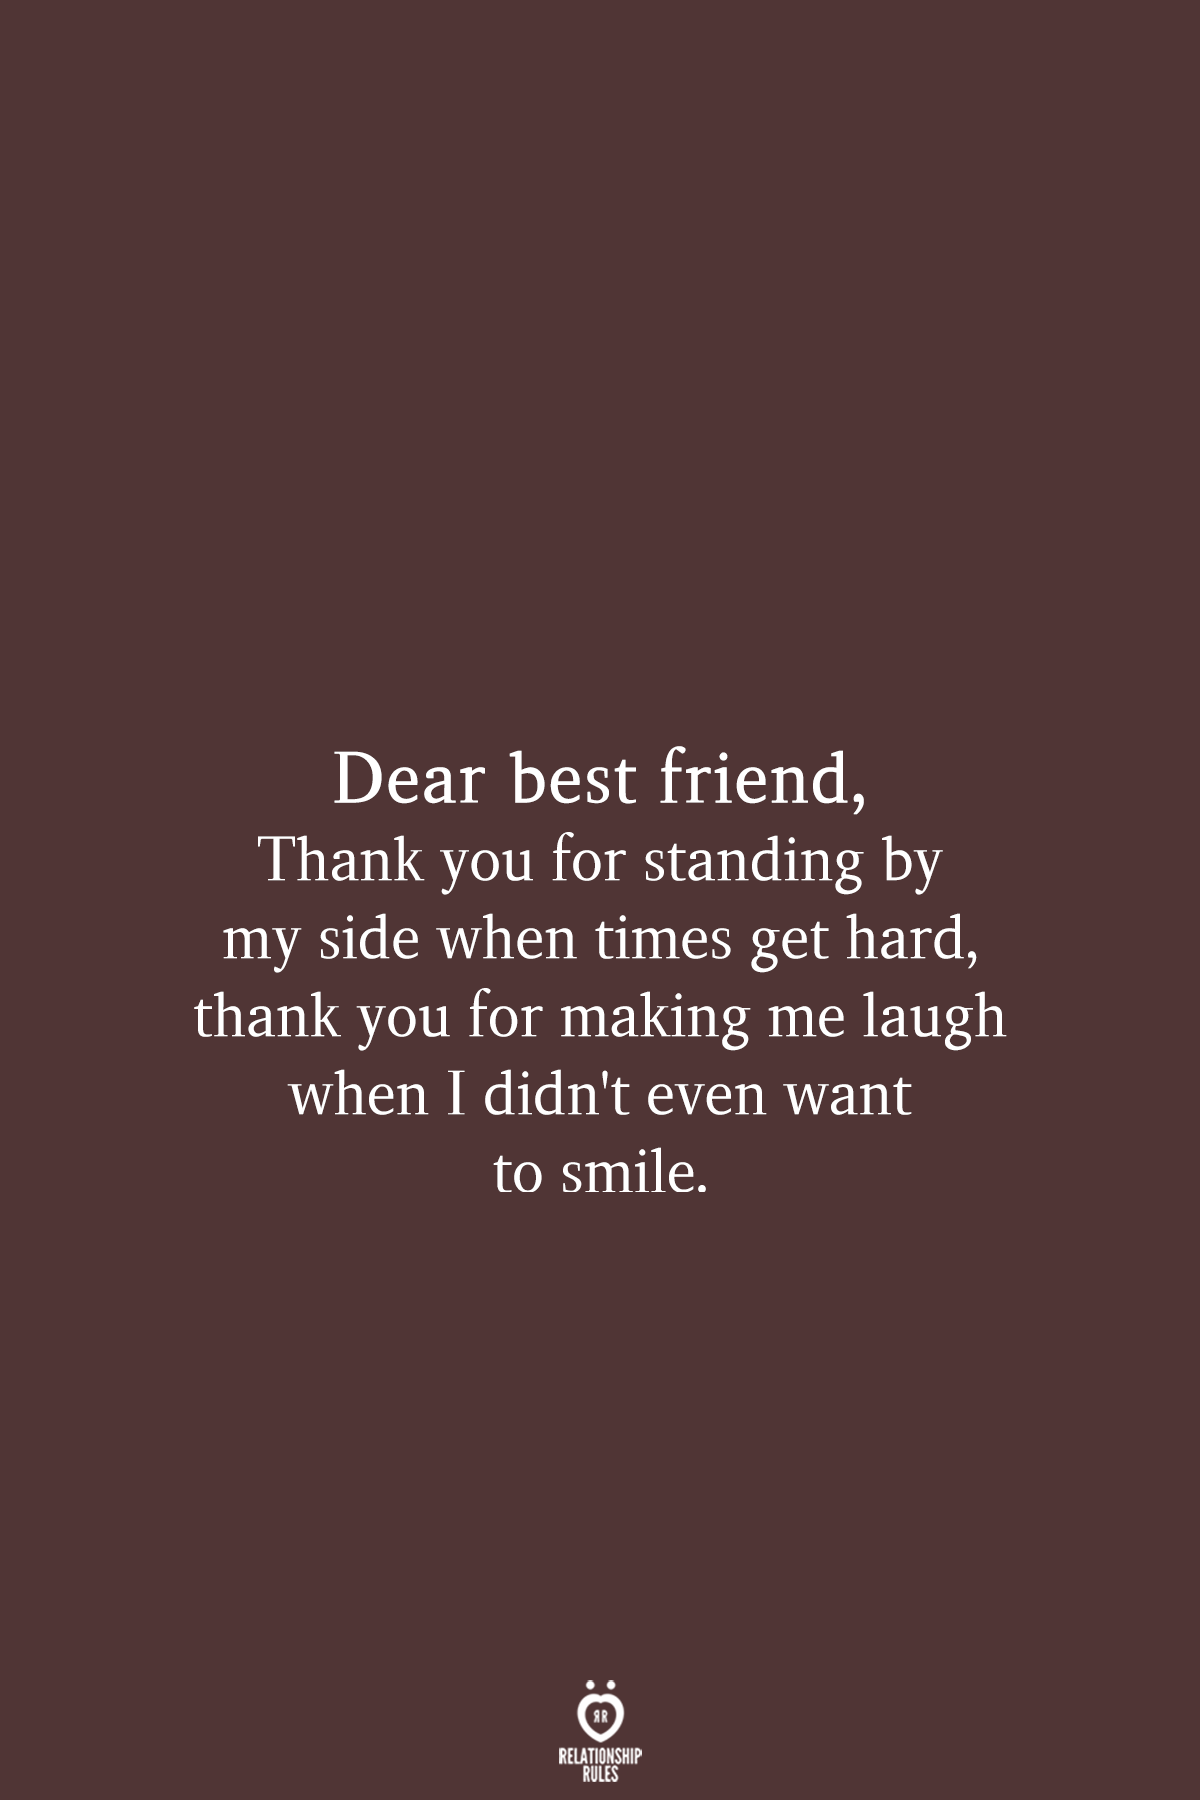 Relationship Rules A Lifestyle Brand For The Heart Thank You Best Friend My Best Friend Quotes Best Friend Quotes Meaningful